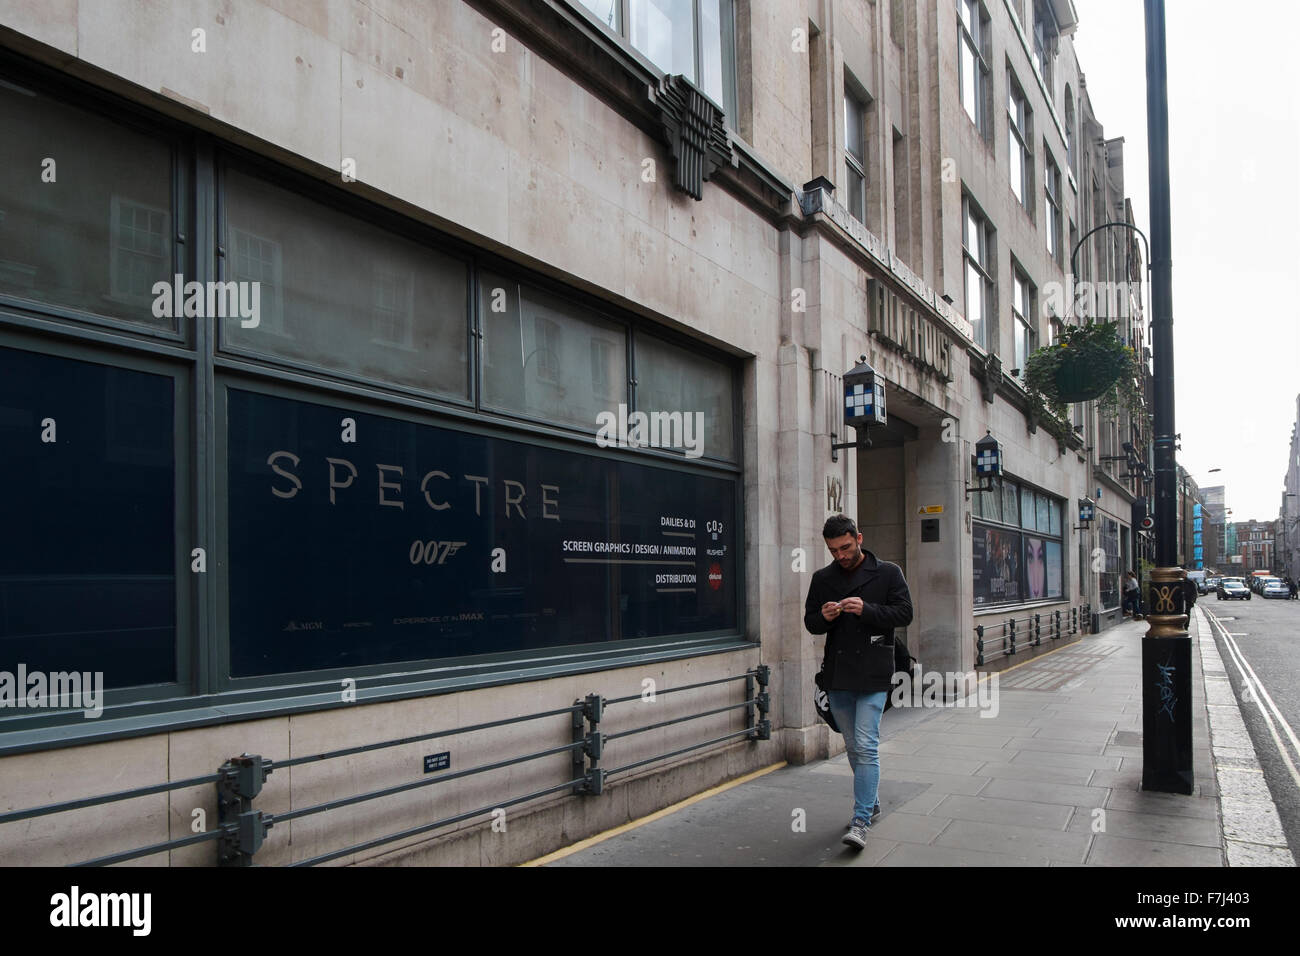 Film House with a poster for the Bond film Spectre in the window in Wardour Street, Soho, London, England, UK - Stock Image